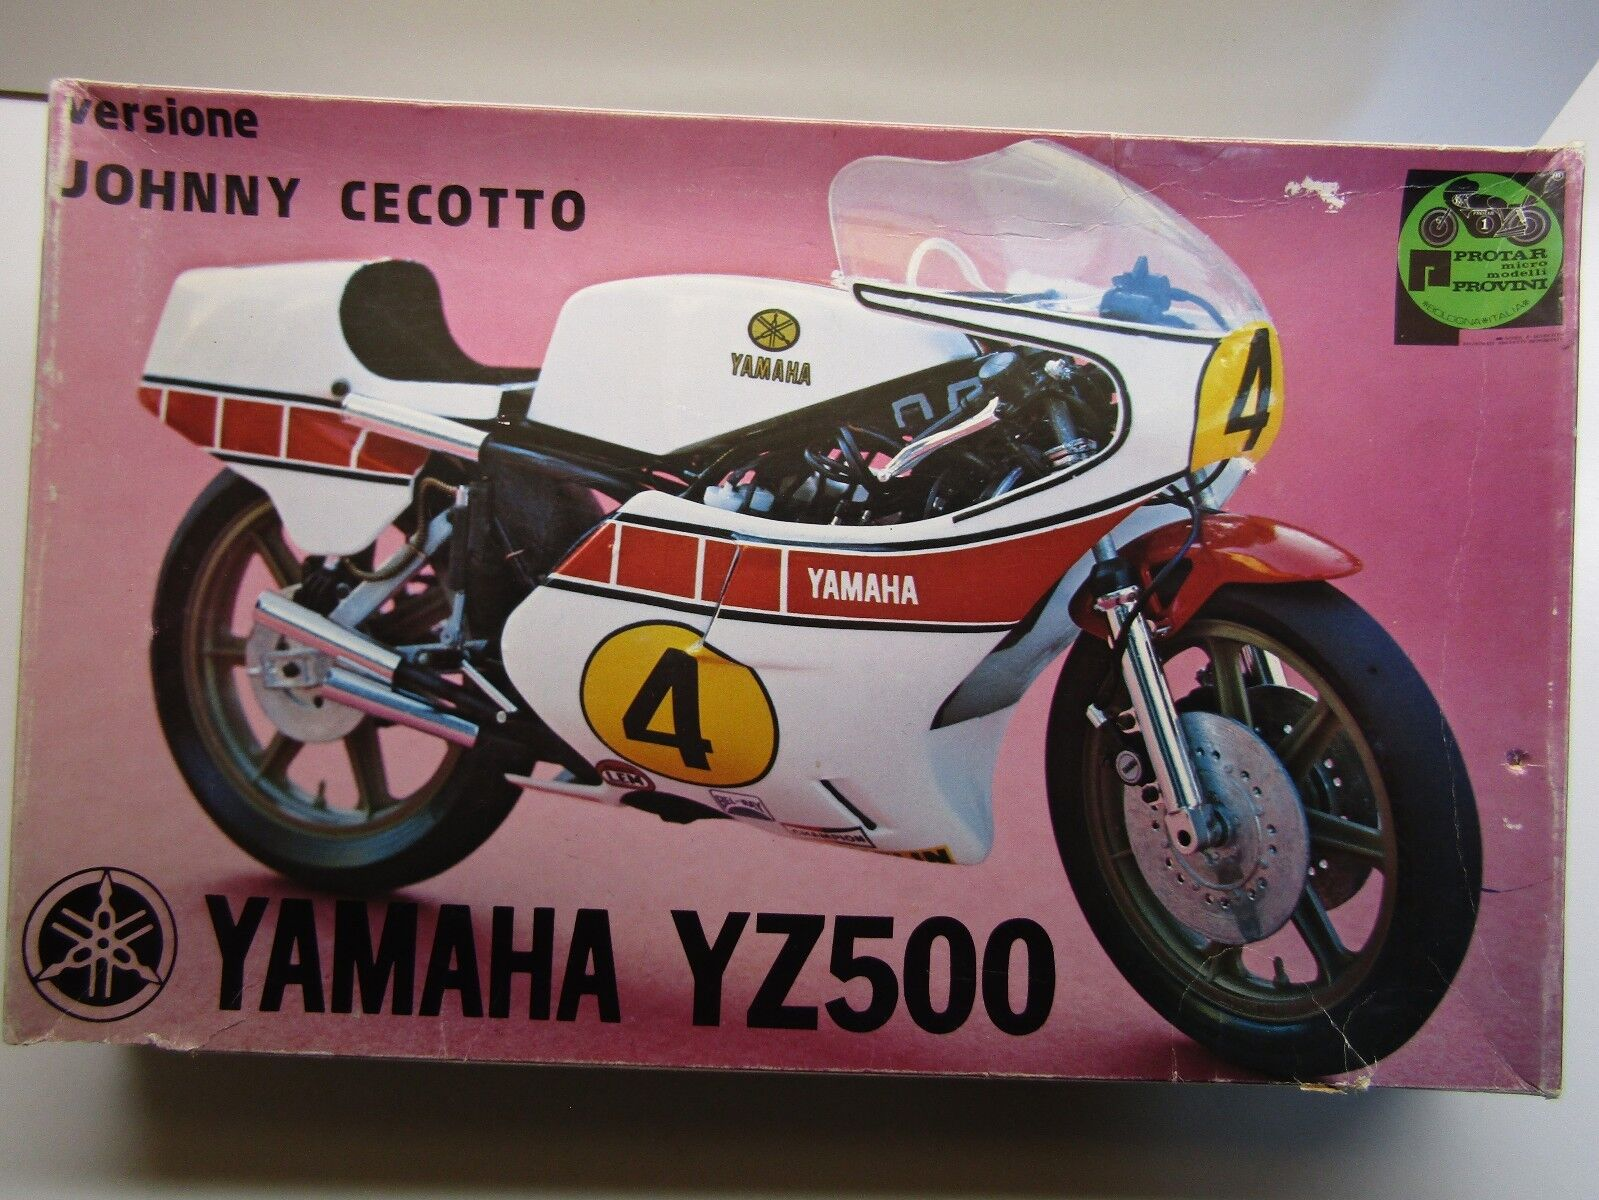 Predar Vintage 1 9 Scale Yamaha YZ500 Johnny Cecotto - Metal Frame etc Kit